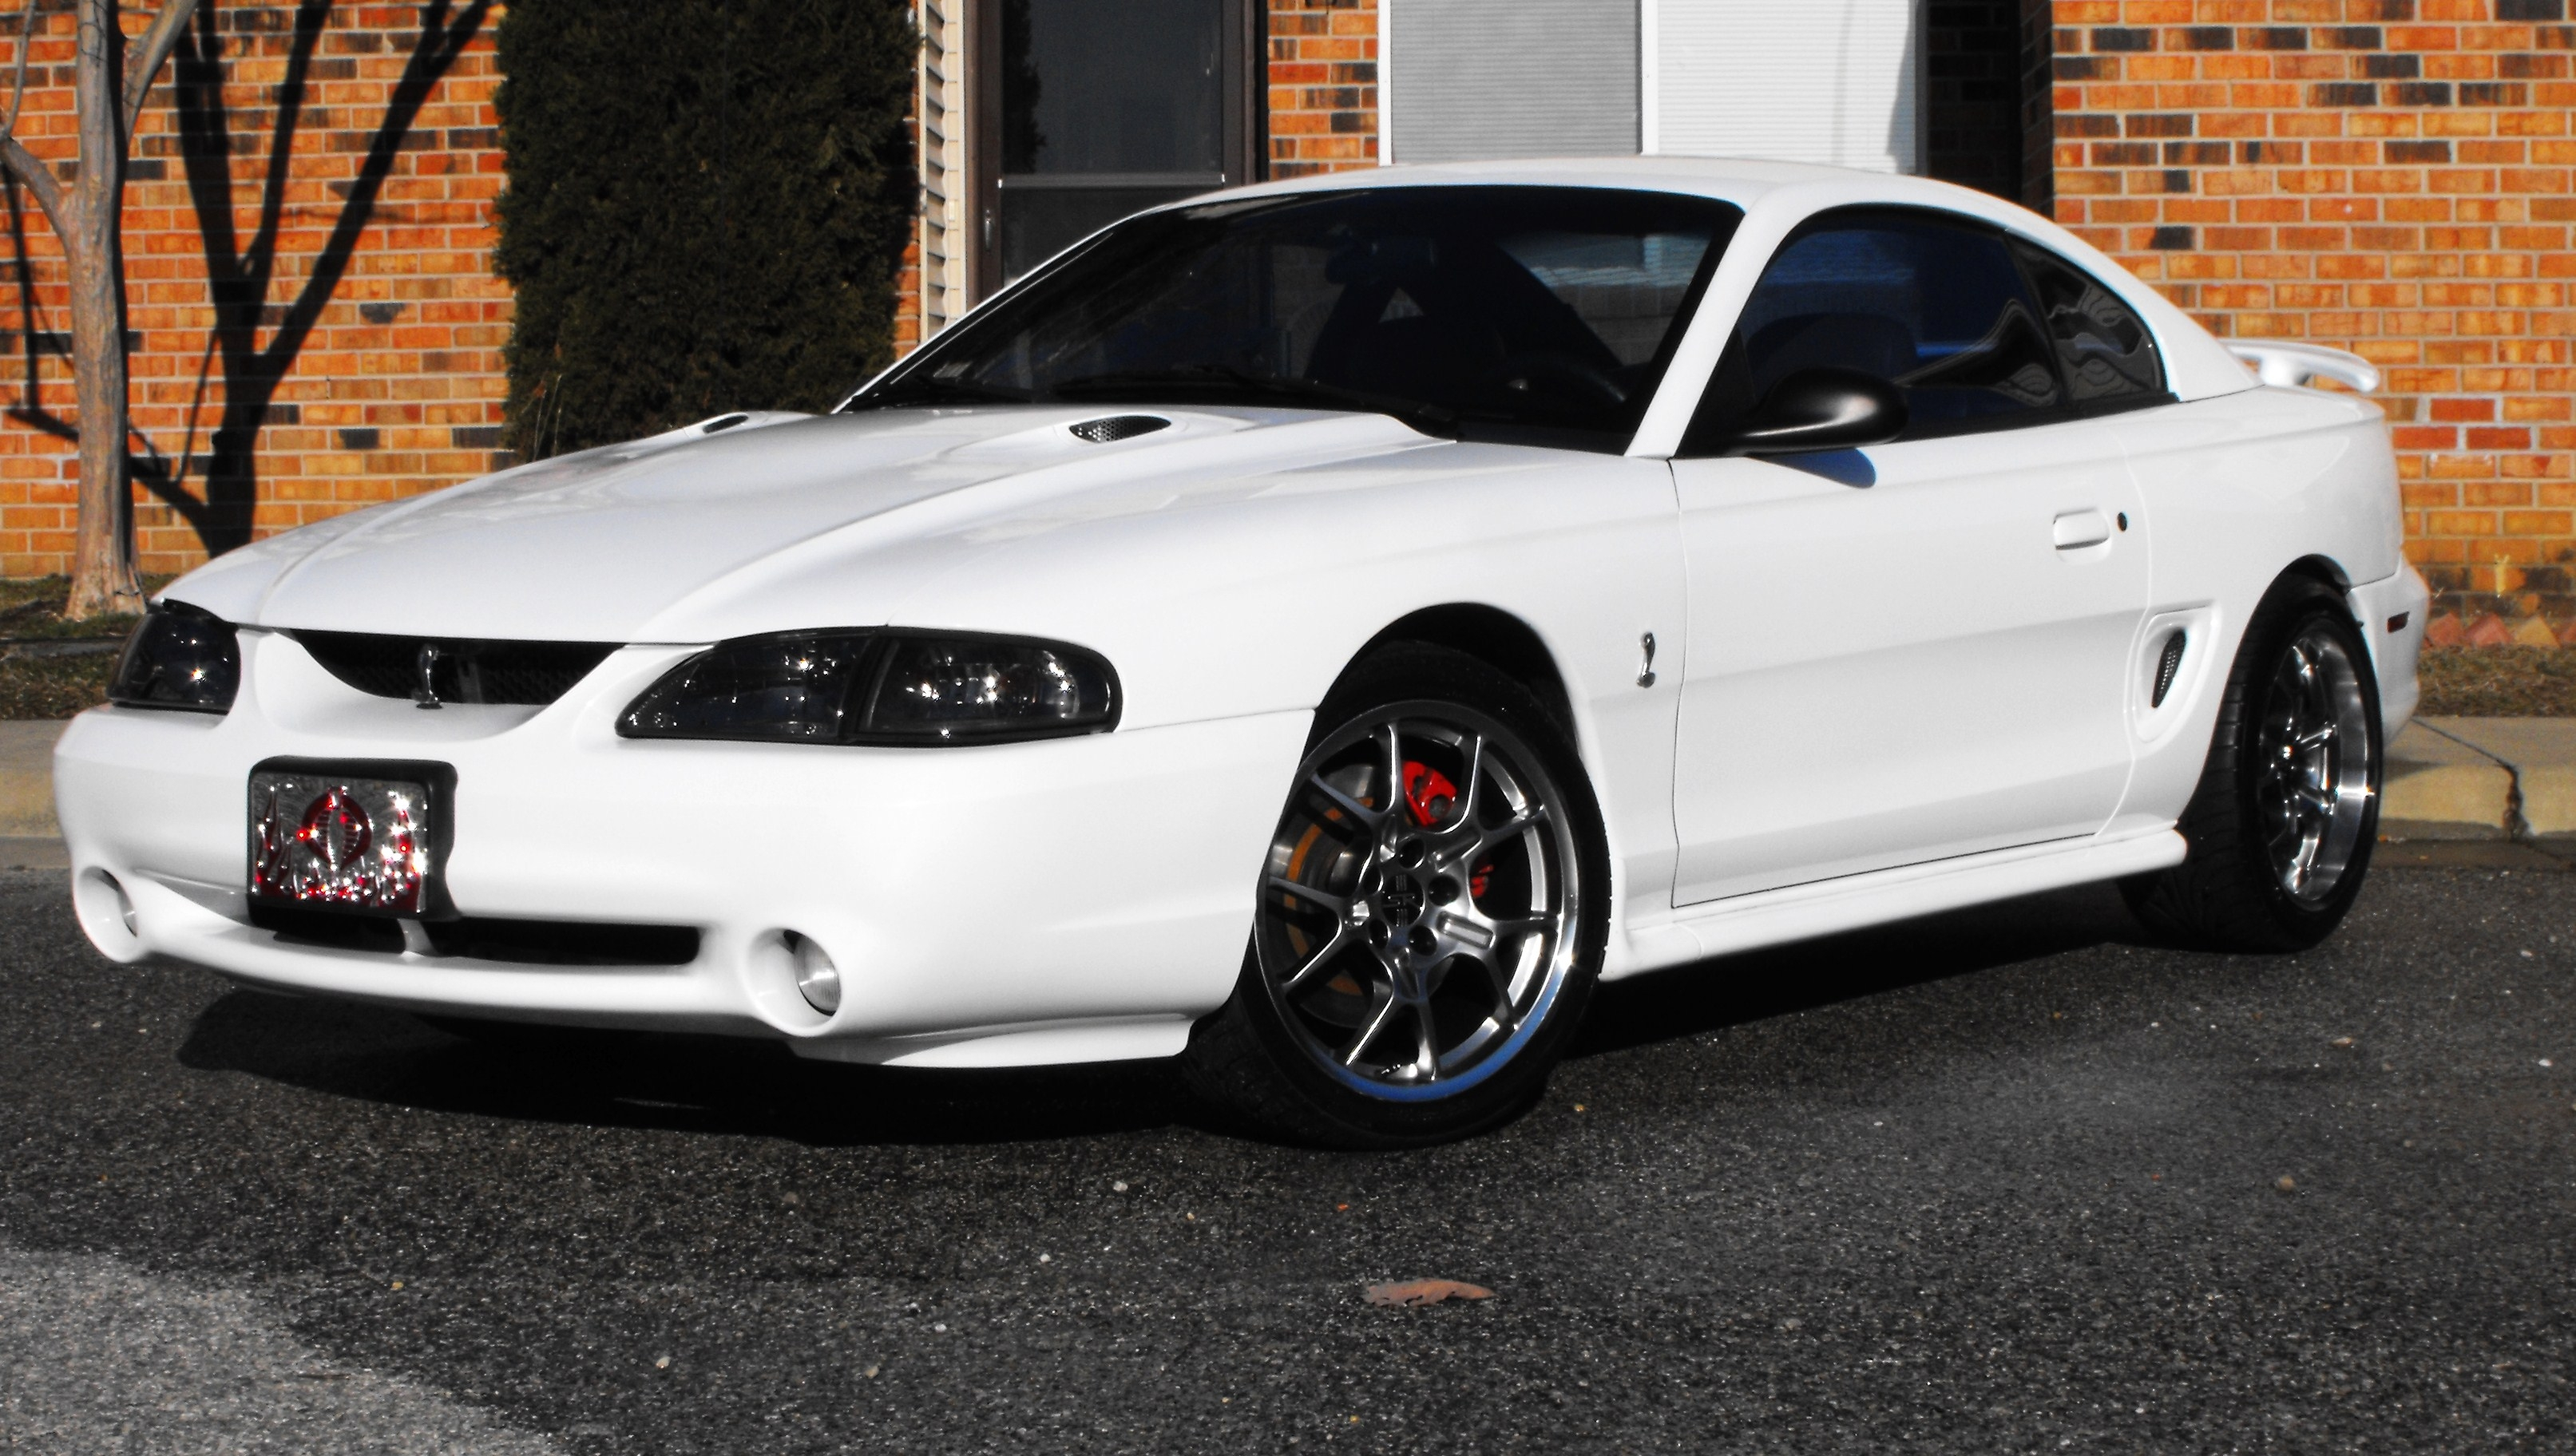 Bouttime09 1996 Ford MustangCobra Coupe 2D Specs, Photos